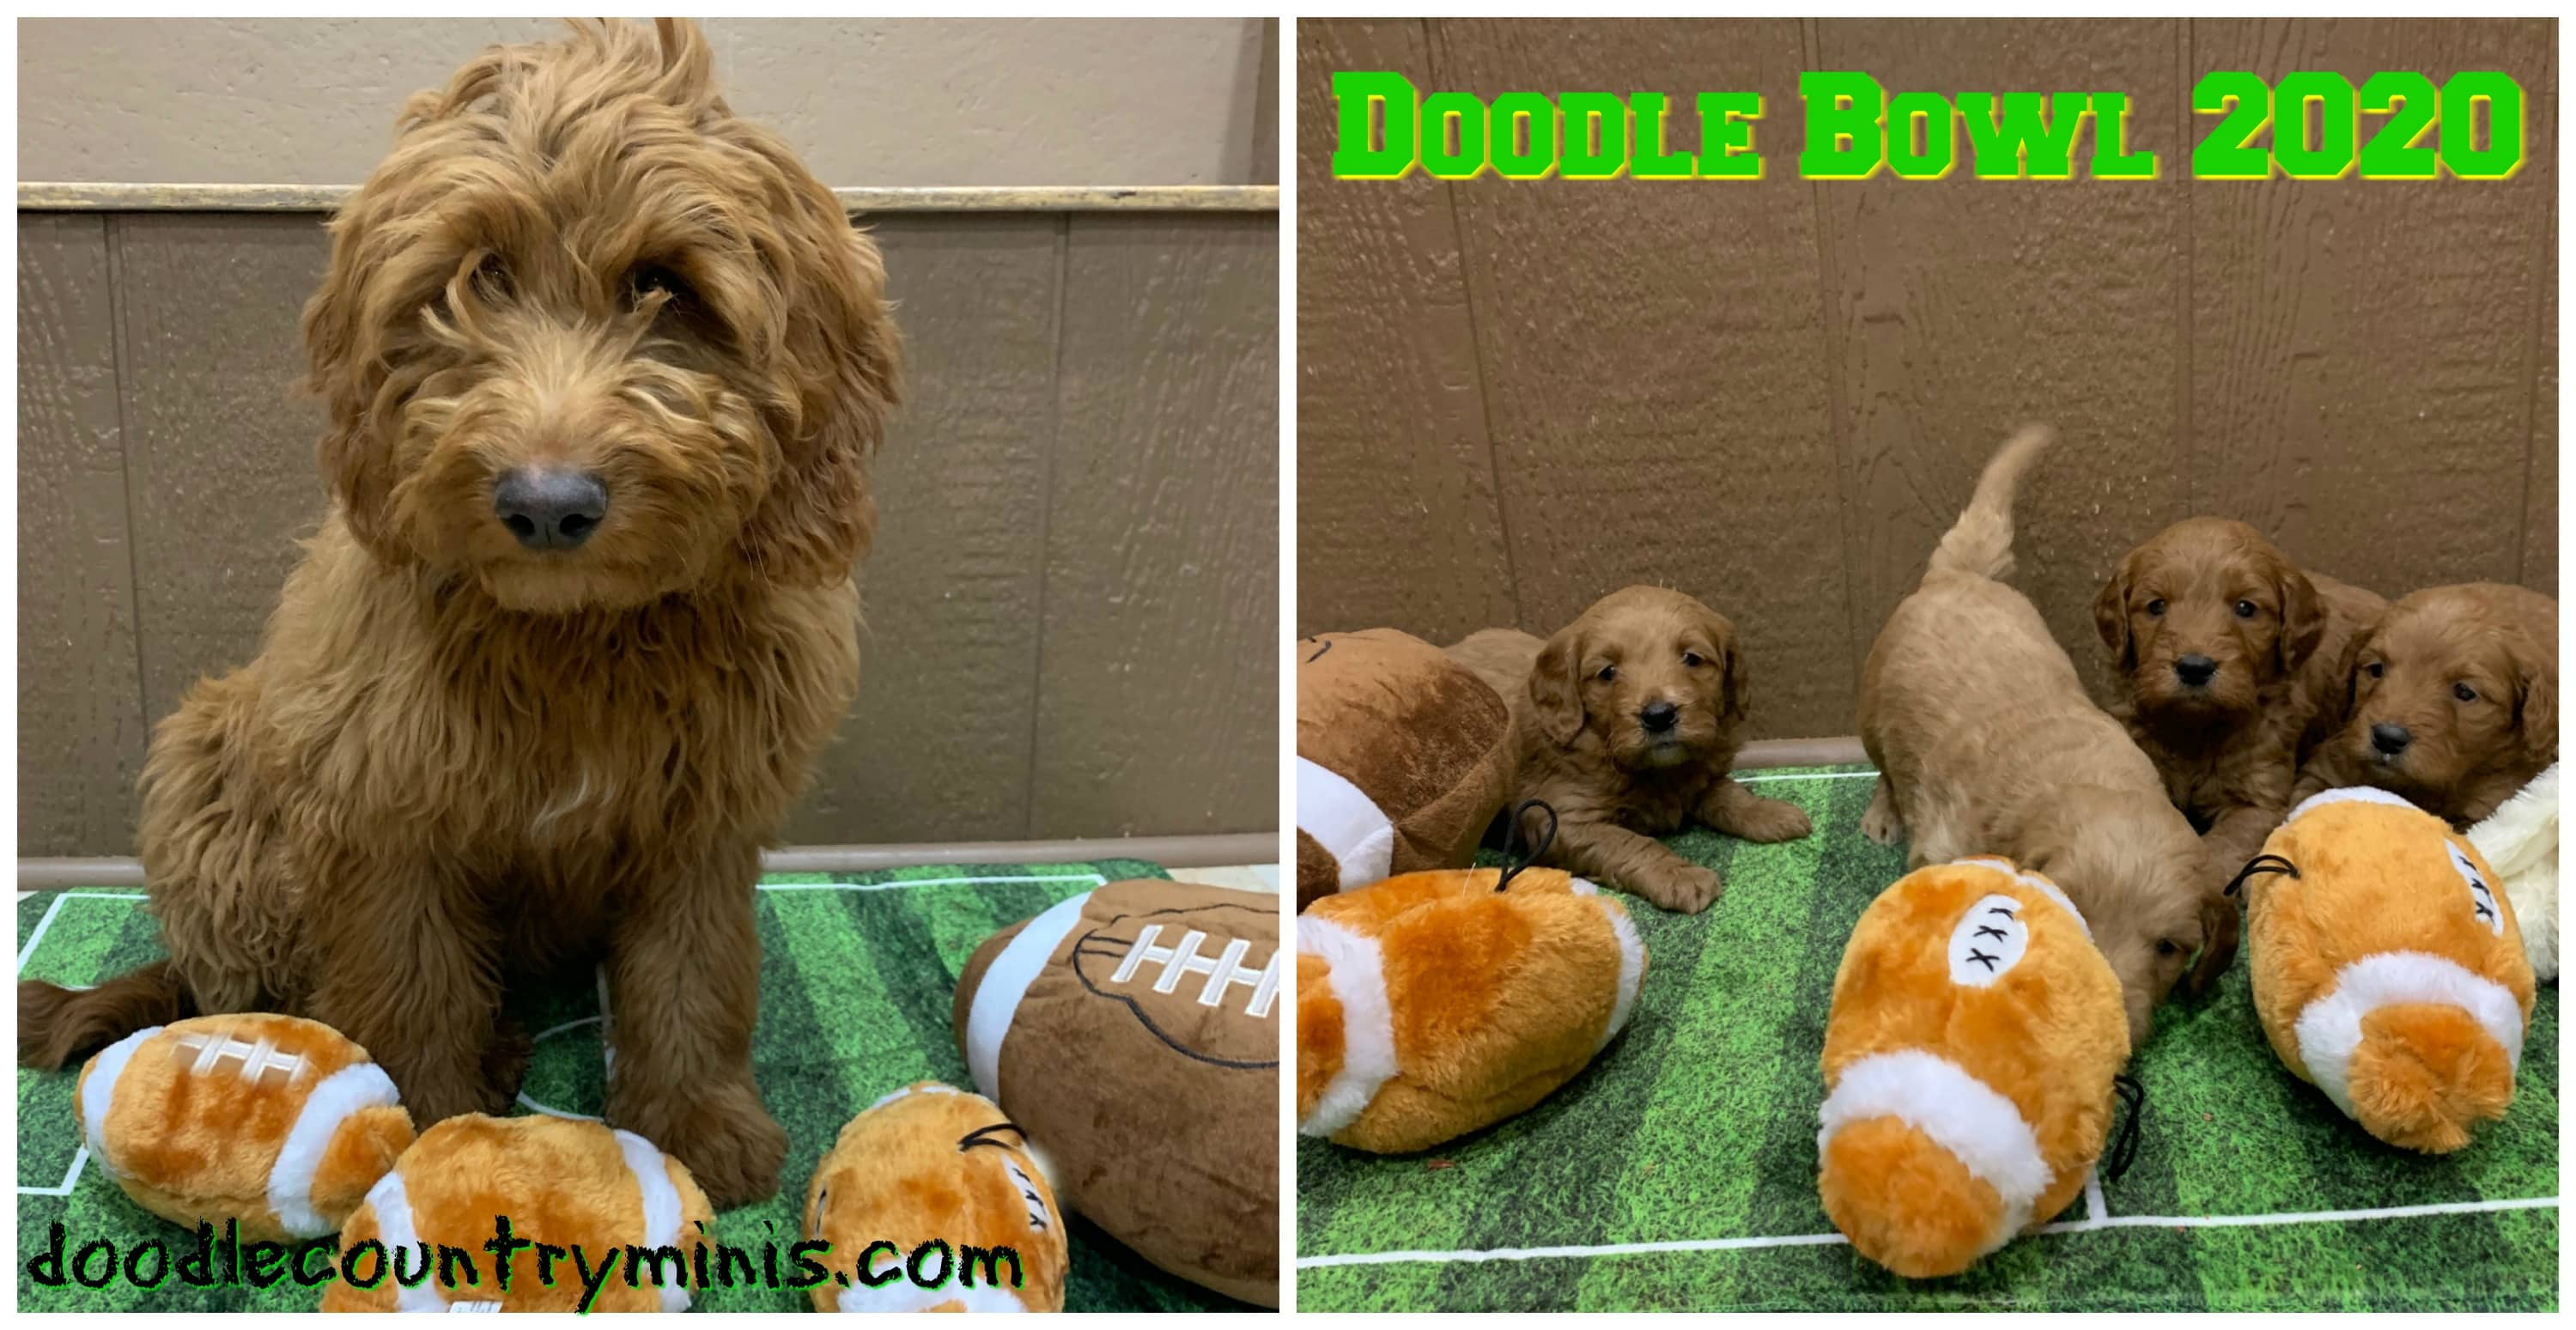 Doodle Country Mini Goldendoodle Puppies Family Raised Mini Goldendoodles